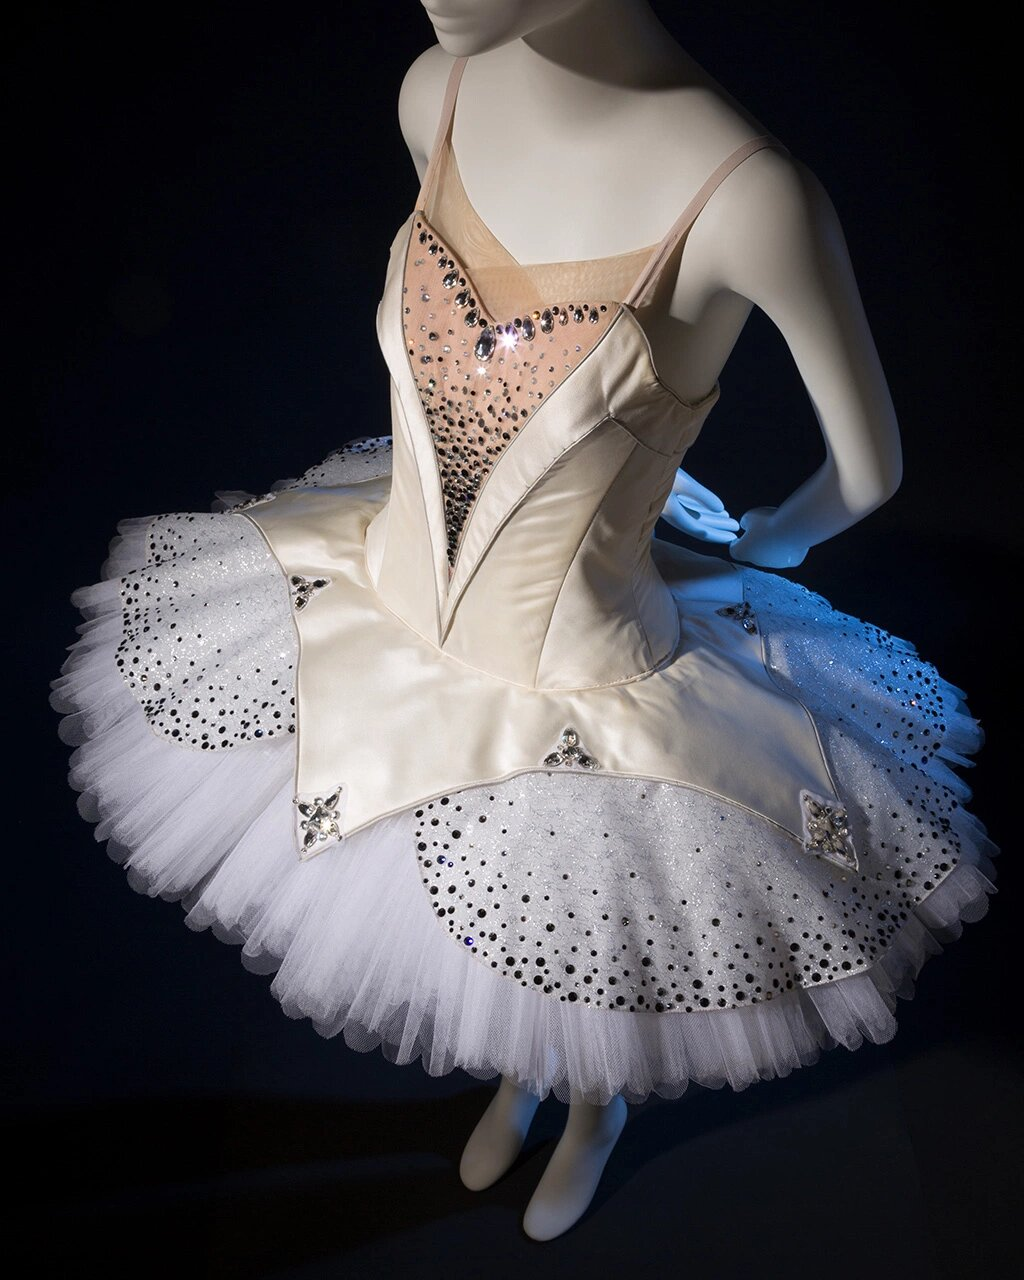 Exposición Ballerina: Fashion's Modern Muse en el Museo de FIT / 'Ballerina: Fashion's Modern Muse' Exhibition at the Museum at FIT